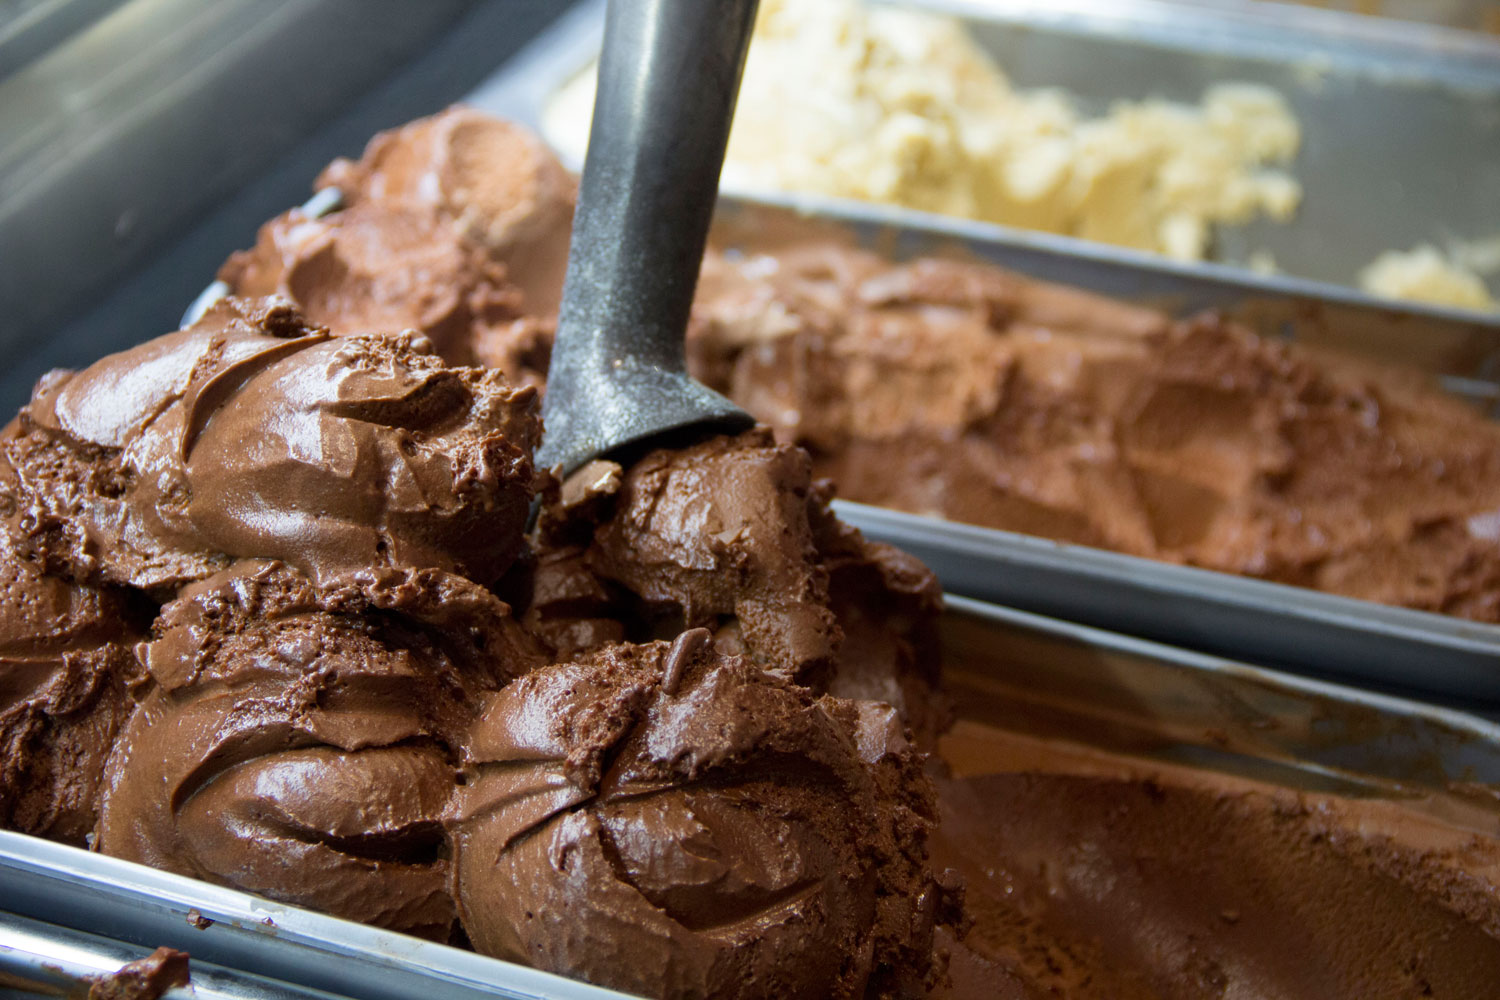 HEXX chocolate ice cream, photo by Adam Christopher Smith courtesy of HEXX.